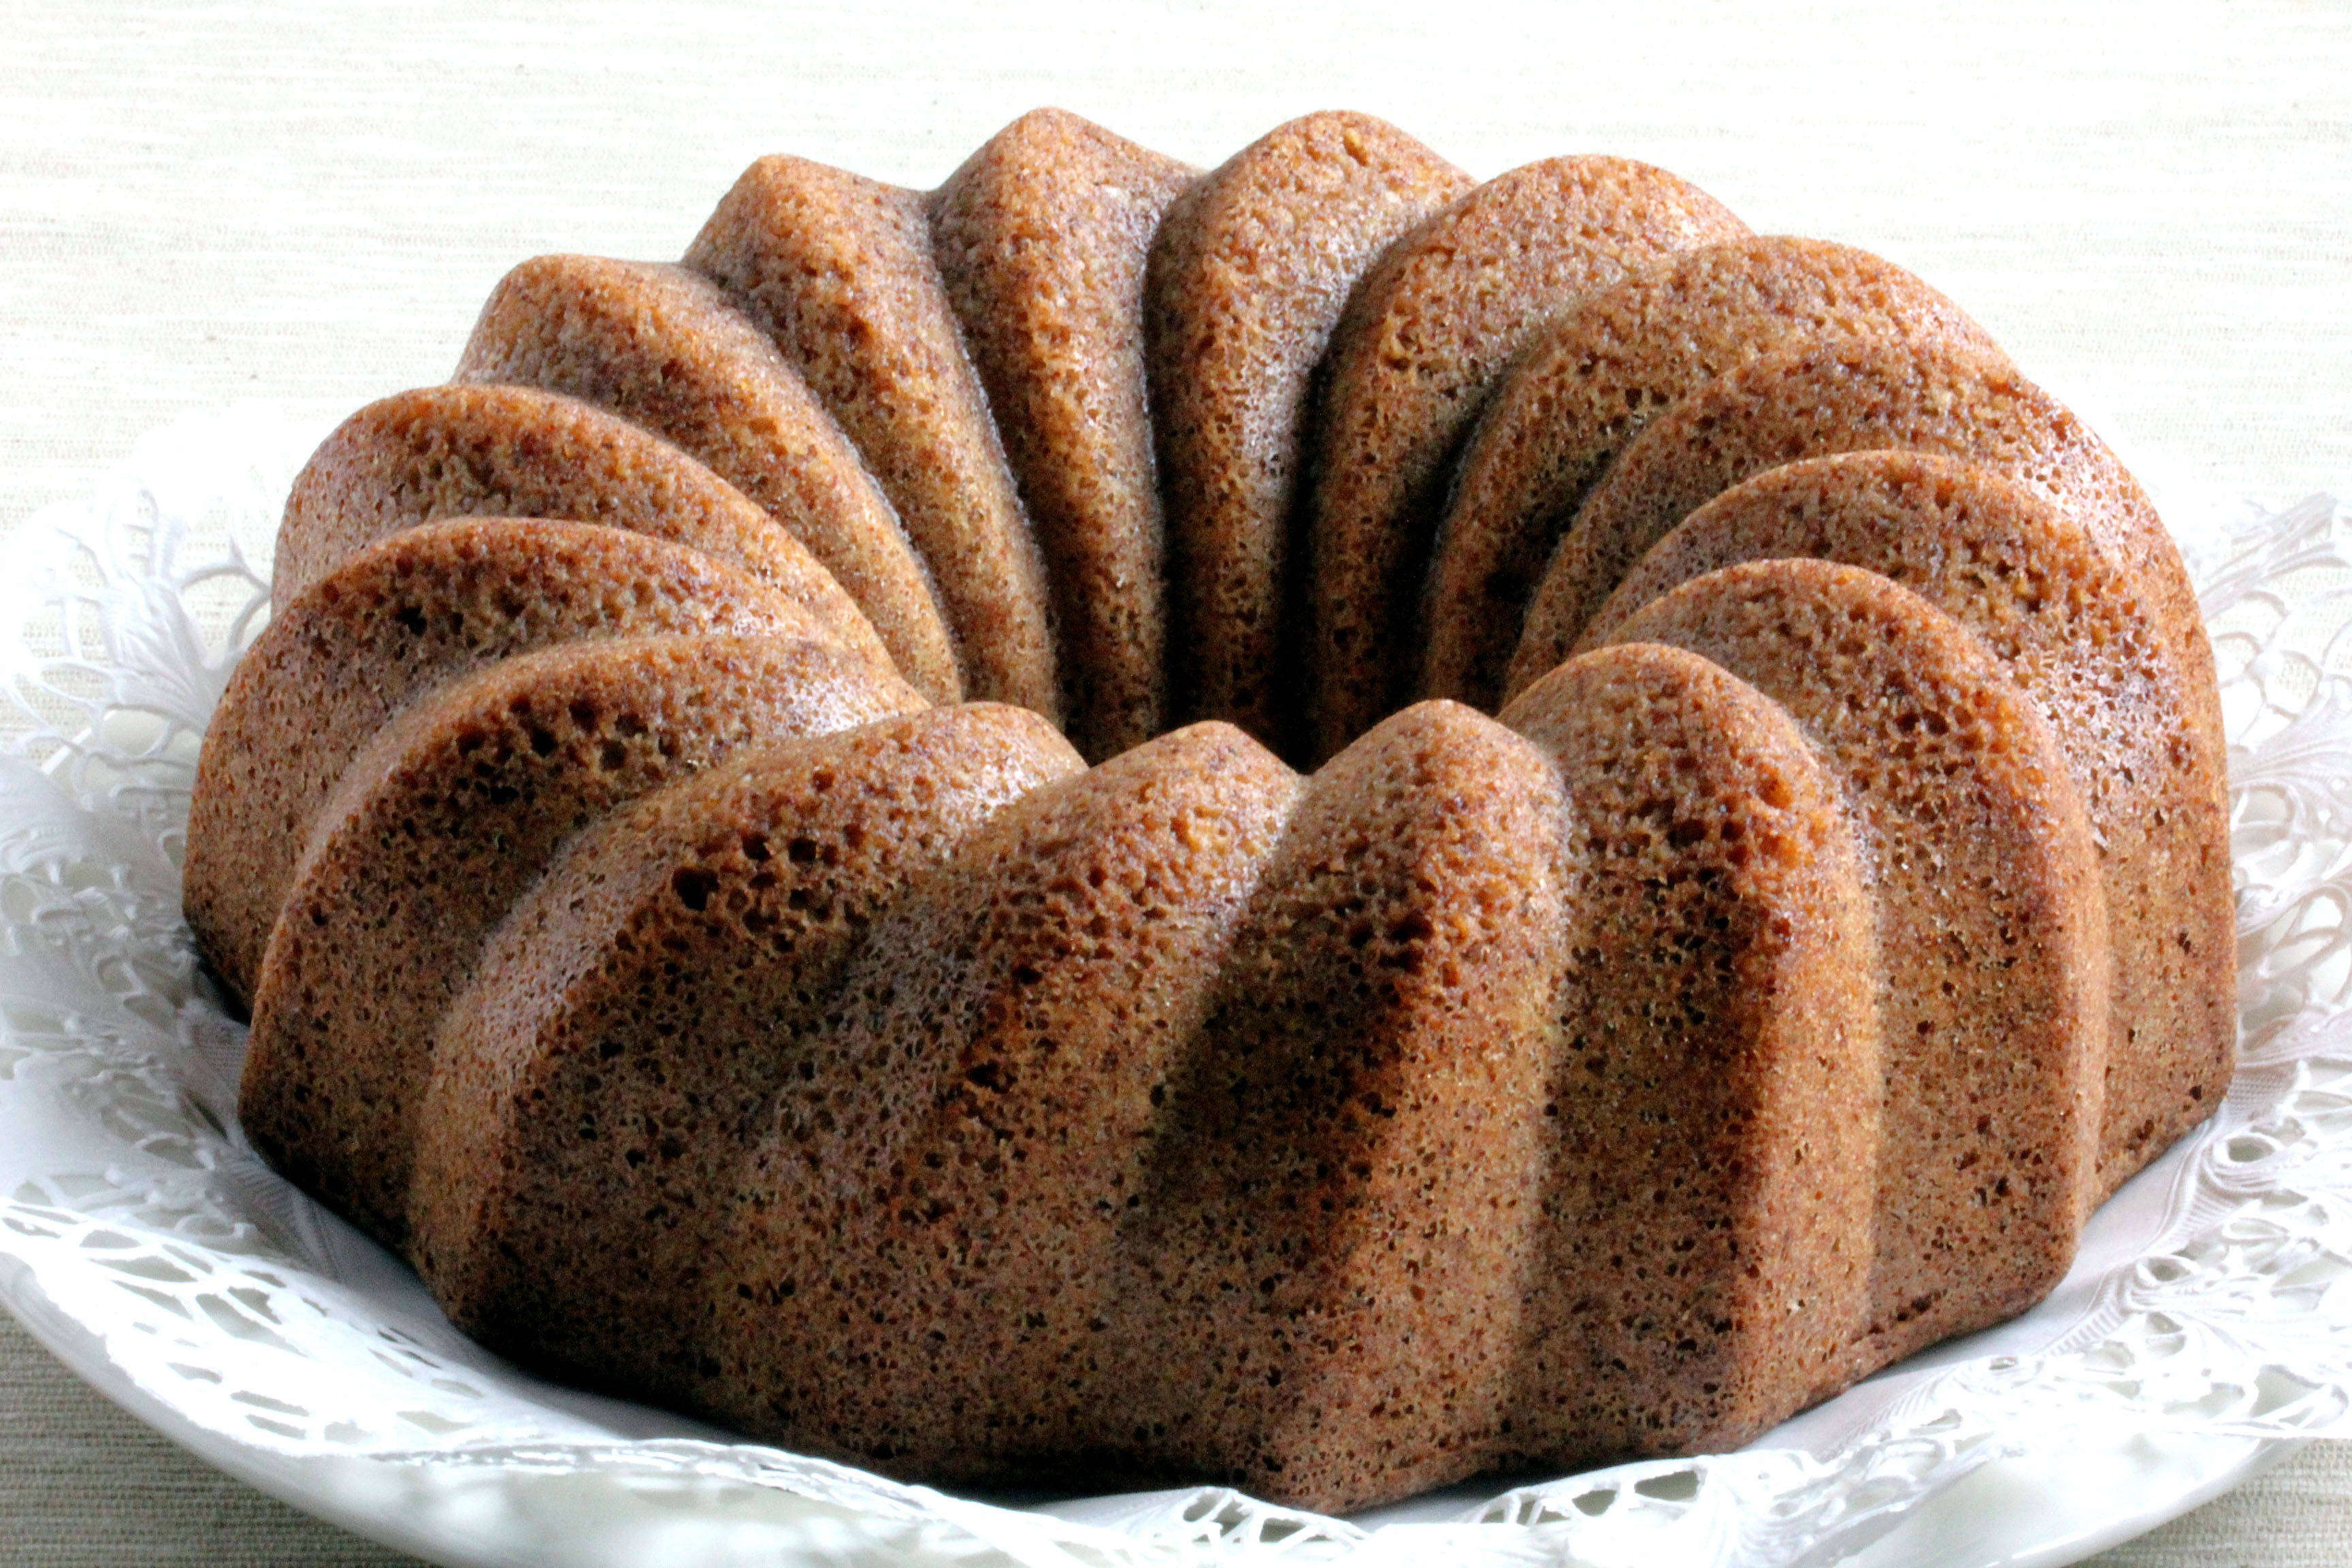 Low Carb Bundt Cake Recipes: BRING AN IRISH WHISKEY CAKE TO YOUR ST PATTYS DAY PARTY